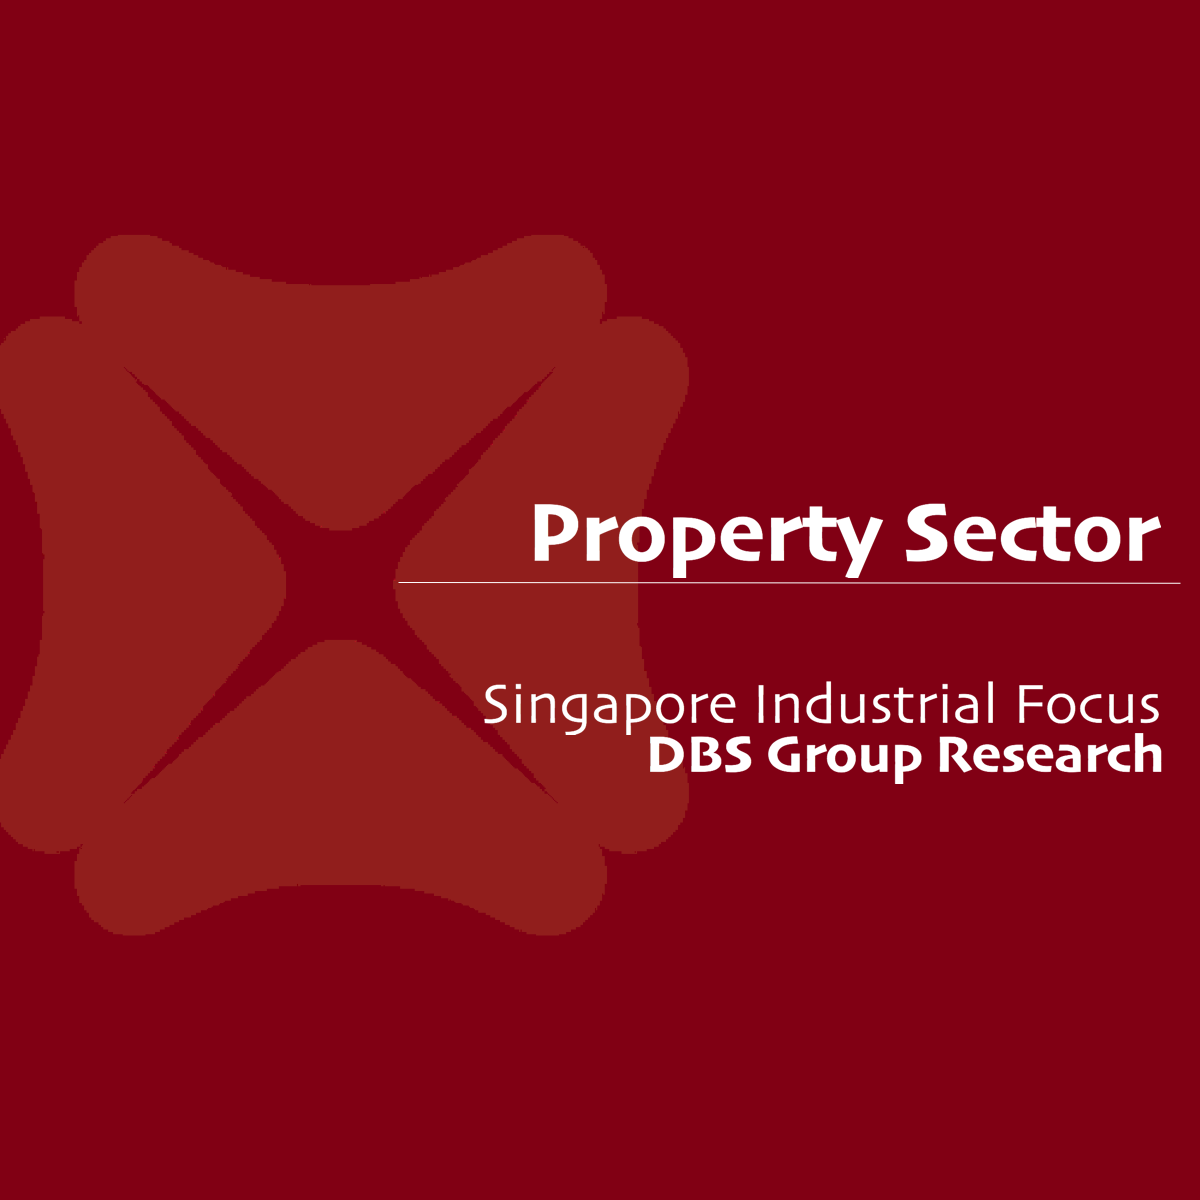 Singapore Property - DBS Vickers 2017-07-28: Blossoming Serangoon Gardens